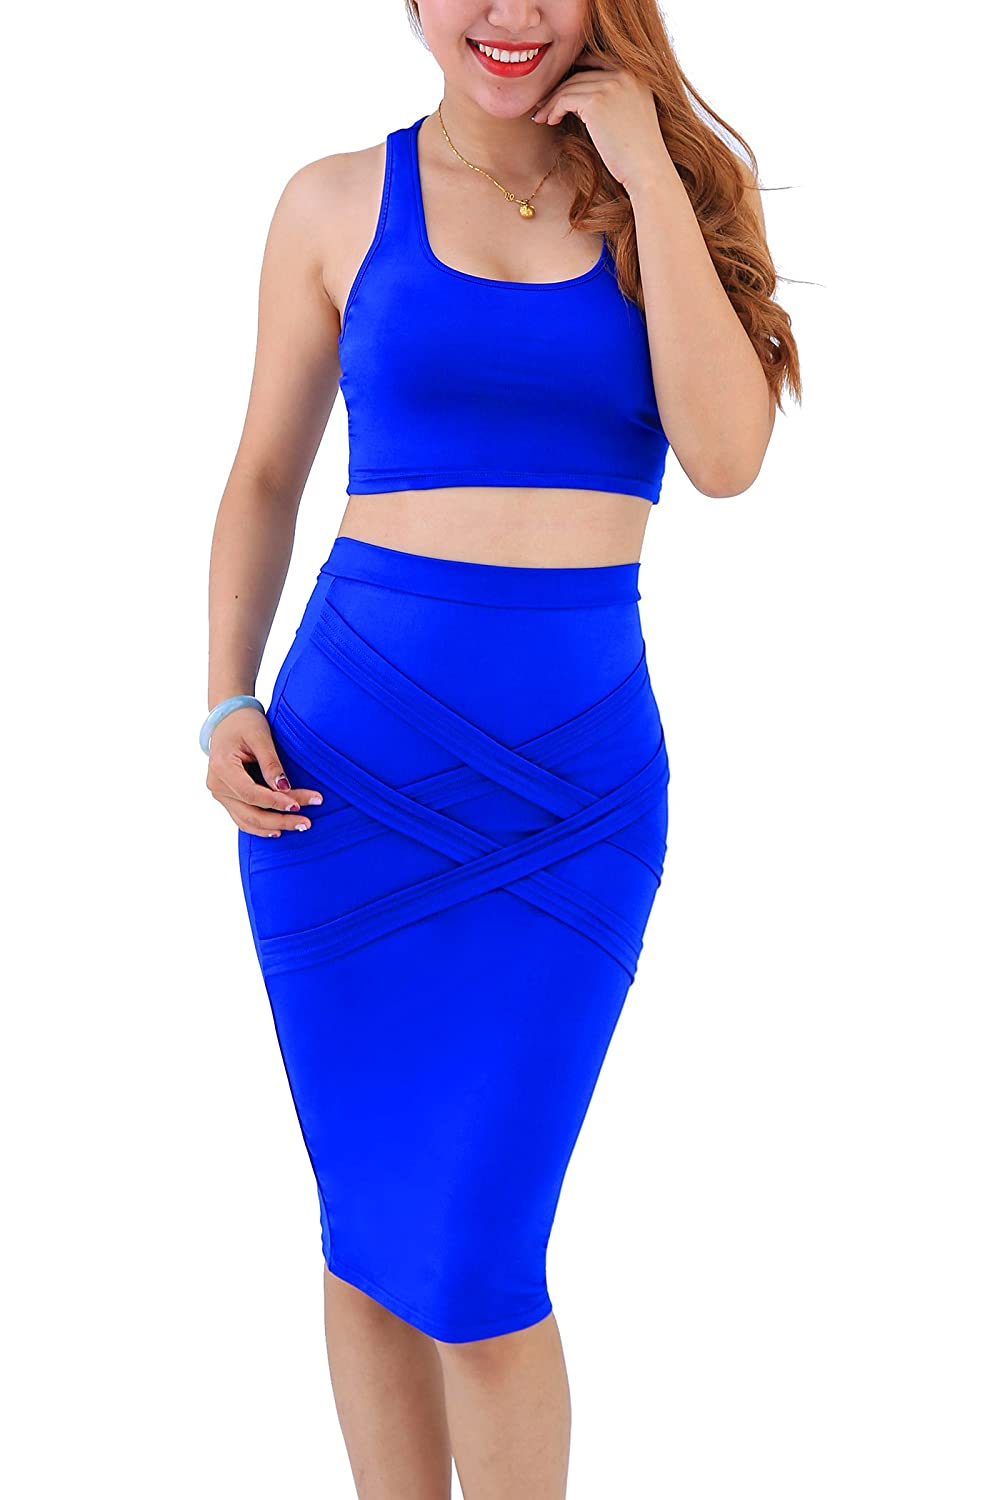 YMING Womens Sexy Crop Top Skirt Two Piece Club Bandage Dress